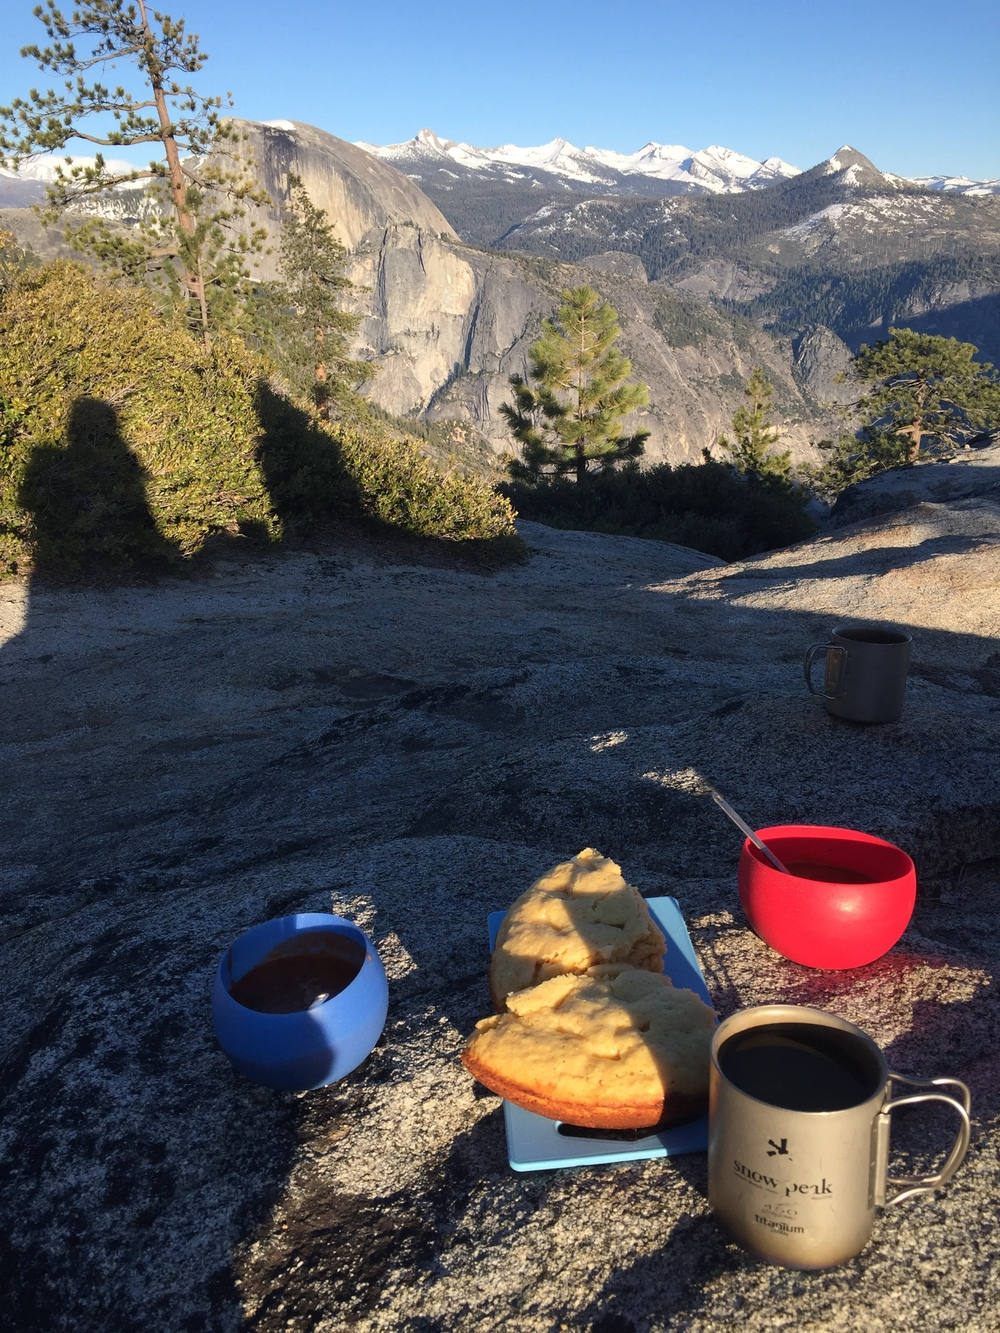 Cornbread, Madras lentils, and Miso with a view like no other